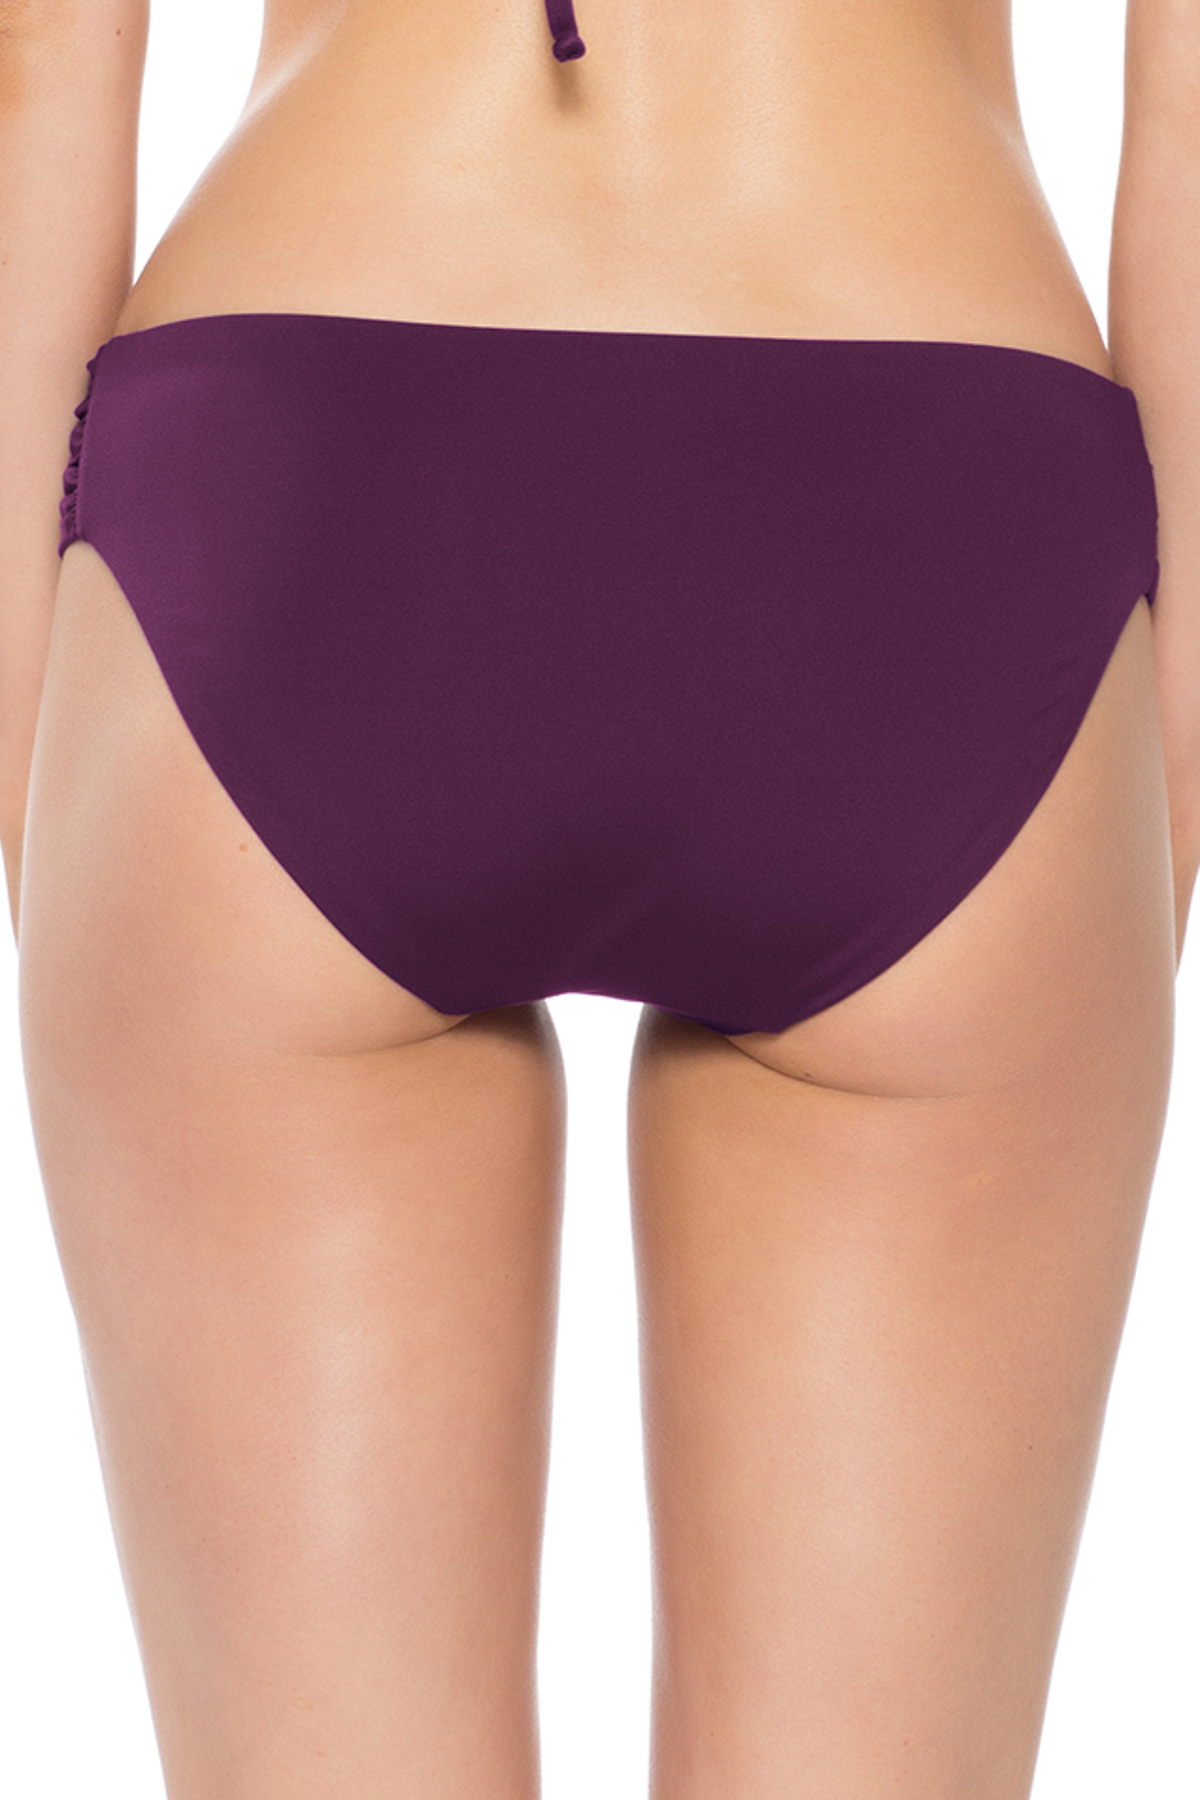 American Shirred Tab Side Hipster Bikini Bottom - Merlot 8